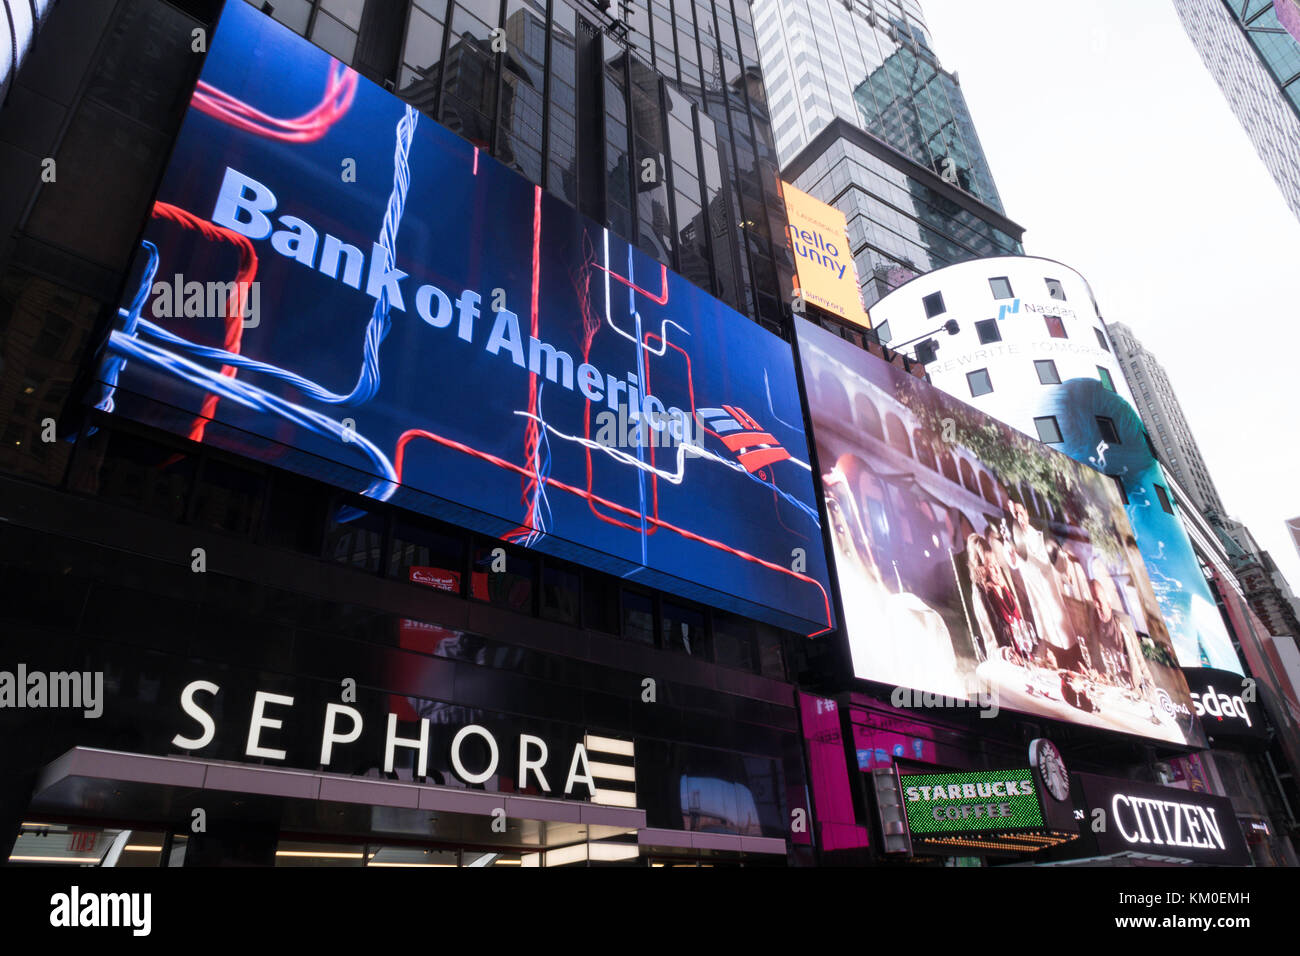 Lit Advertising Billboards in Times Square, NYC, USA - Stock Image